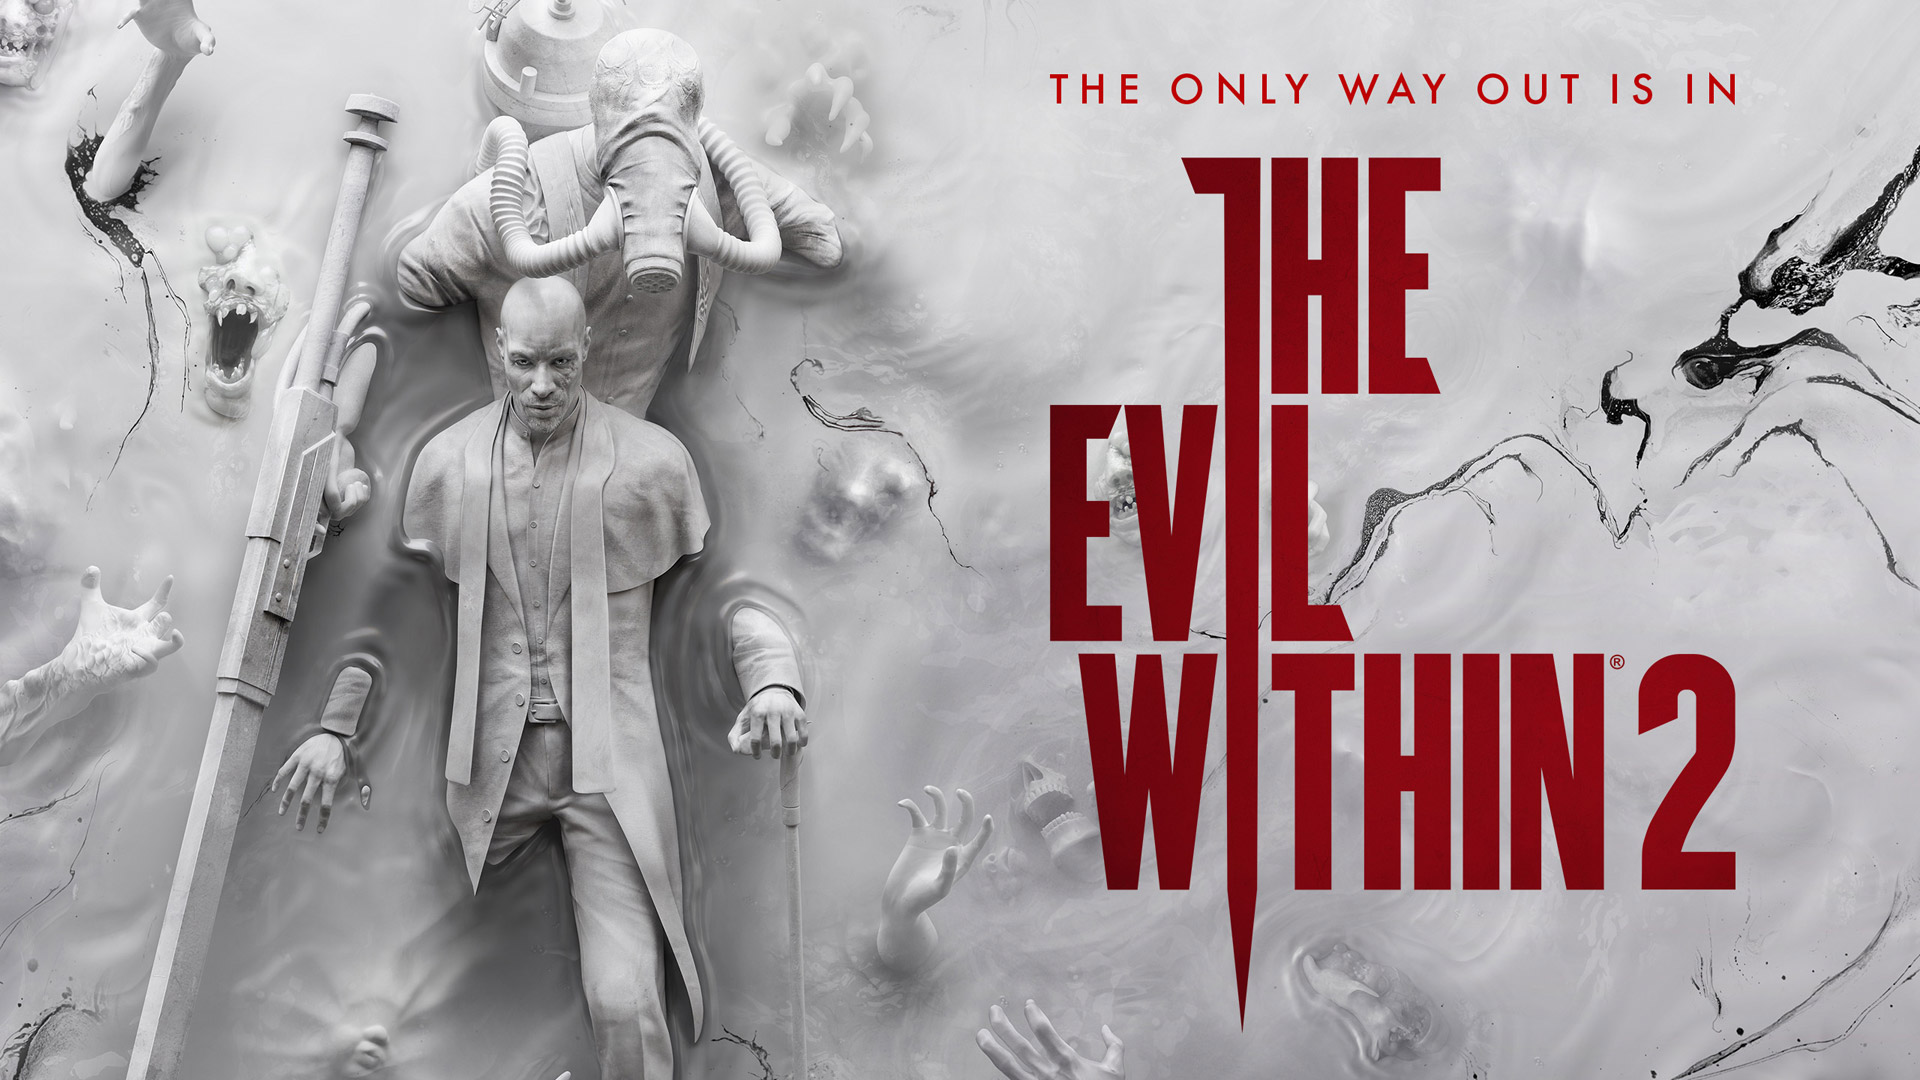 The Evil Within 2 Wallpaper in 1920x1080